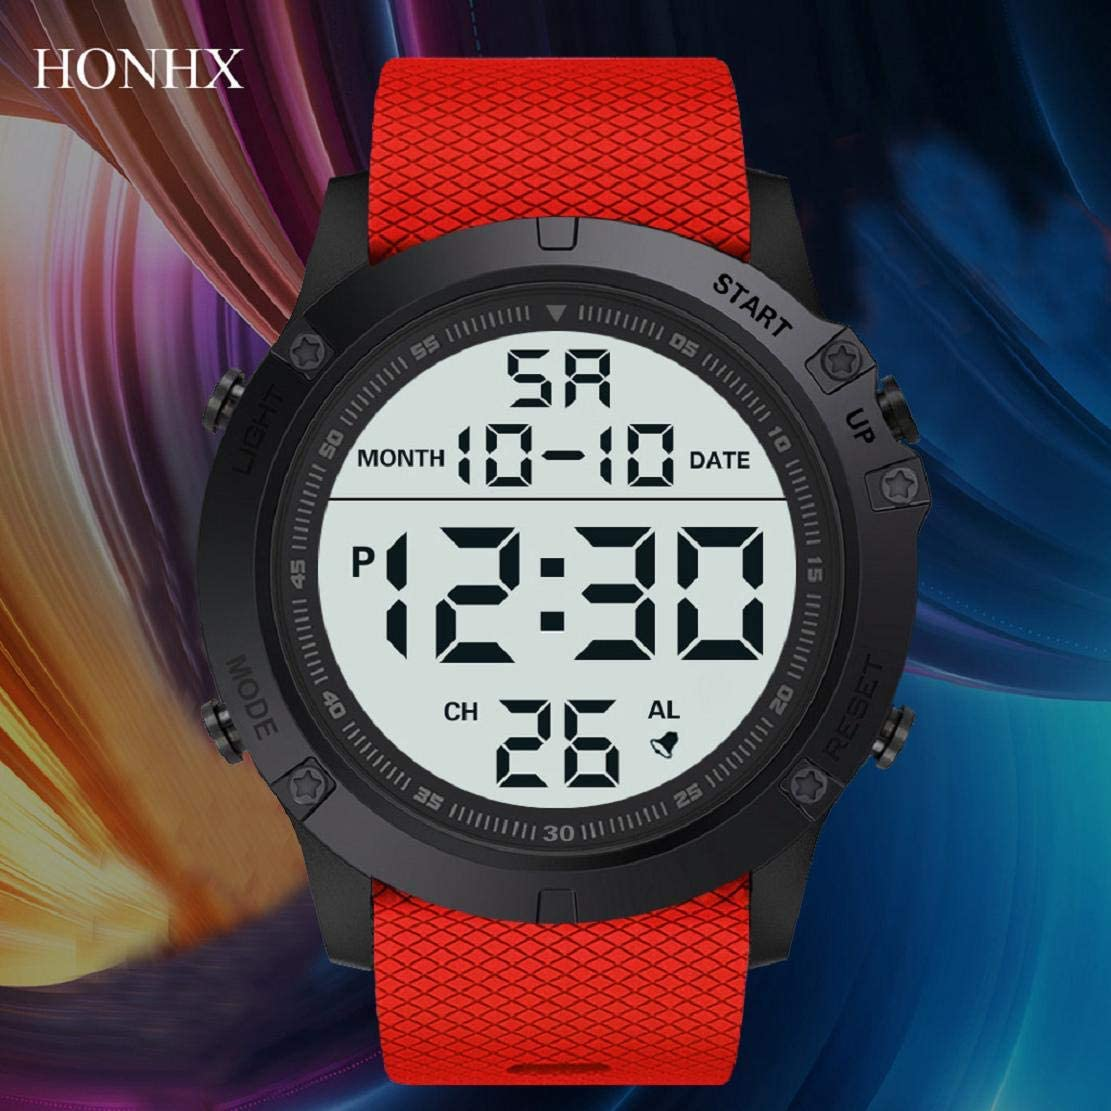 Vacally Fashion Mens Military Users Out of Sports Watches Luxury Led Digital Hd Display Waterproof Wear-Resistant Clothing Wild Watches